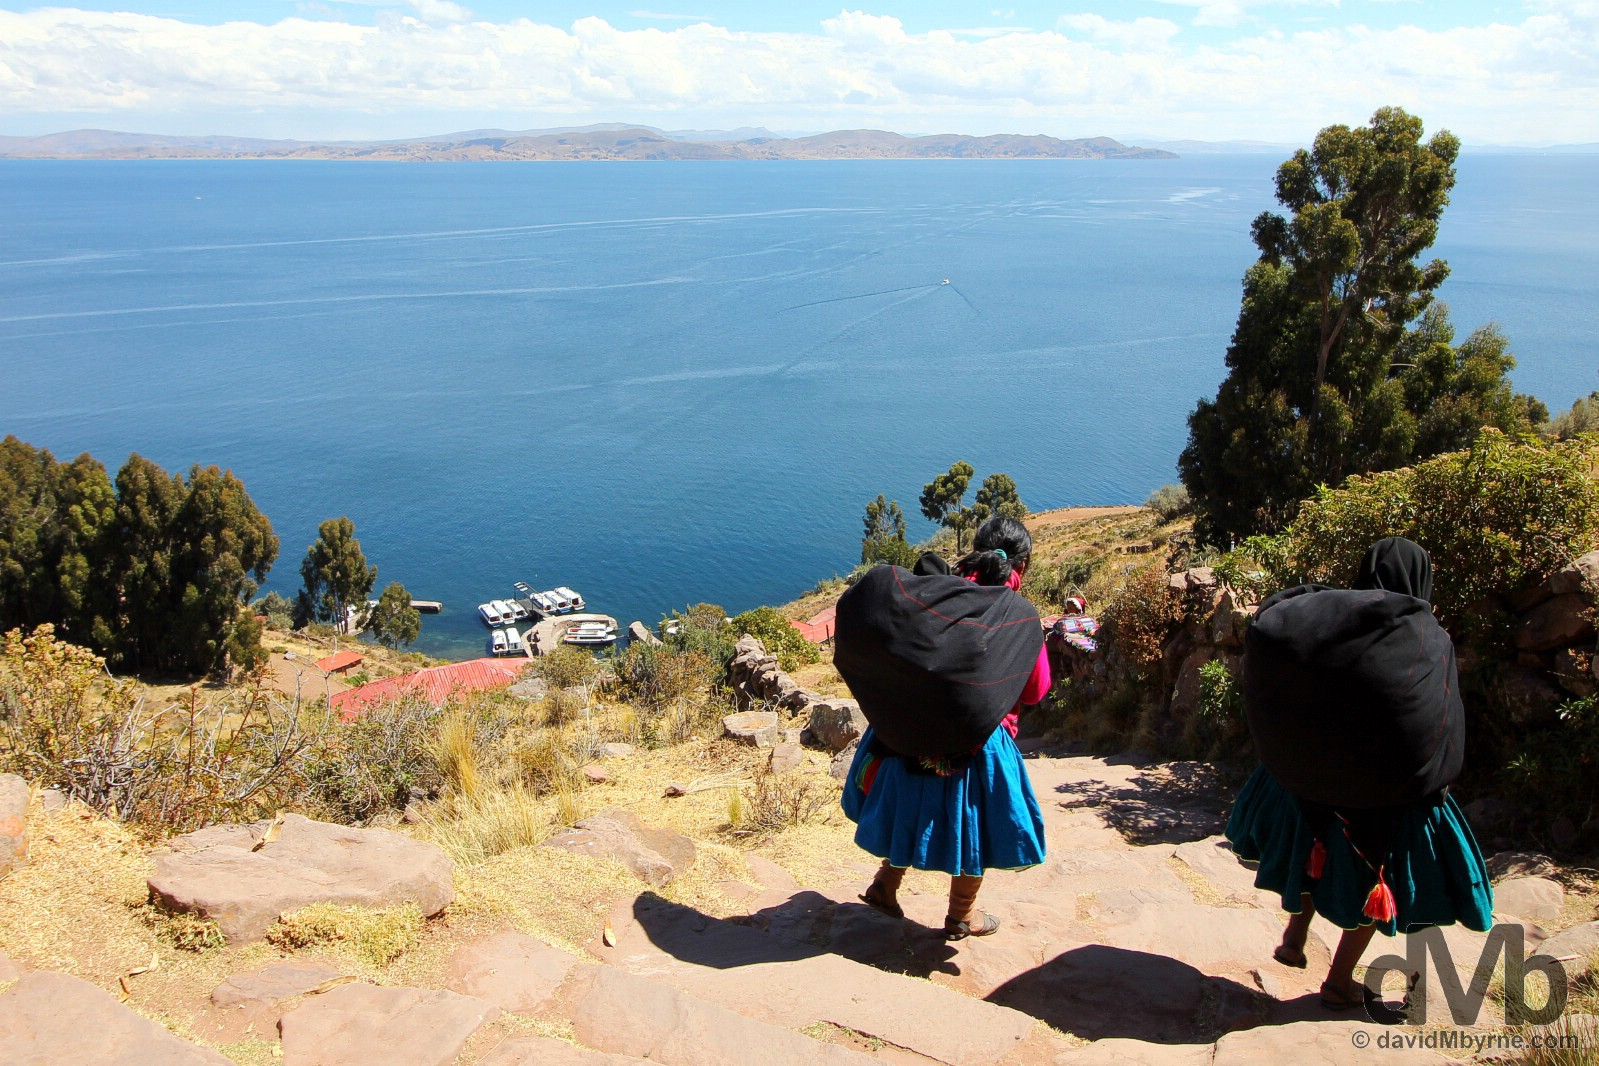 Locals descending to the port on Taquile Island, Lake Titicaca, Peru. August 21, 2015.